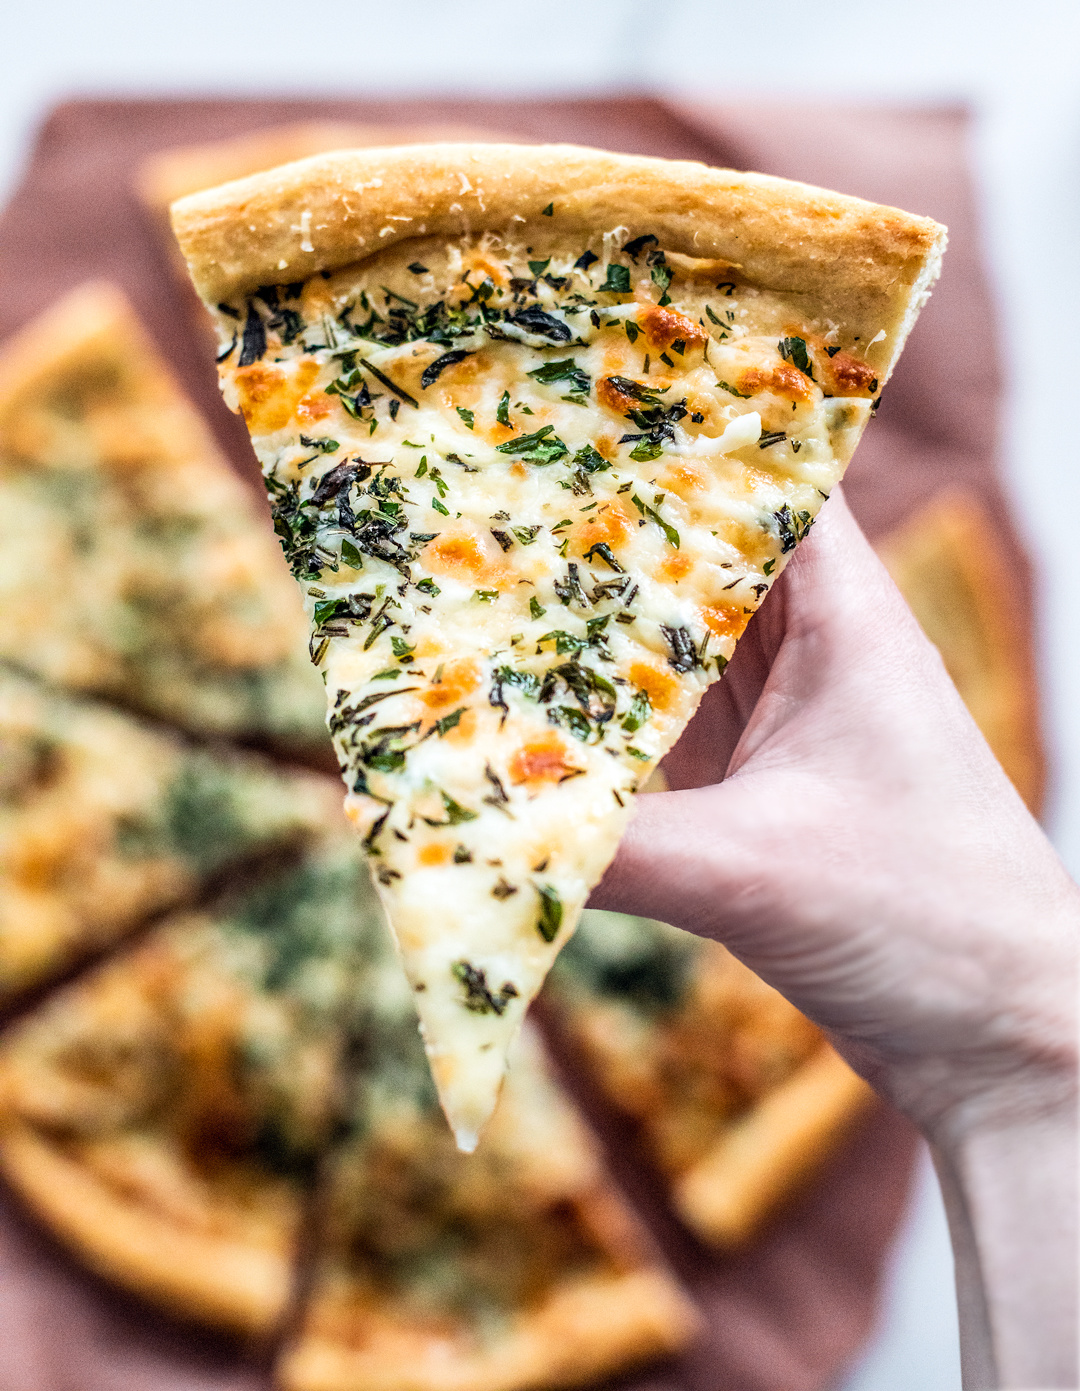 Hand holding up a slice of herb and garlic cheese pizza for a close up.